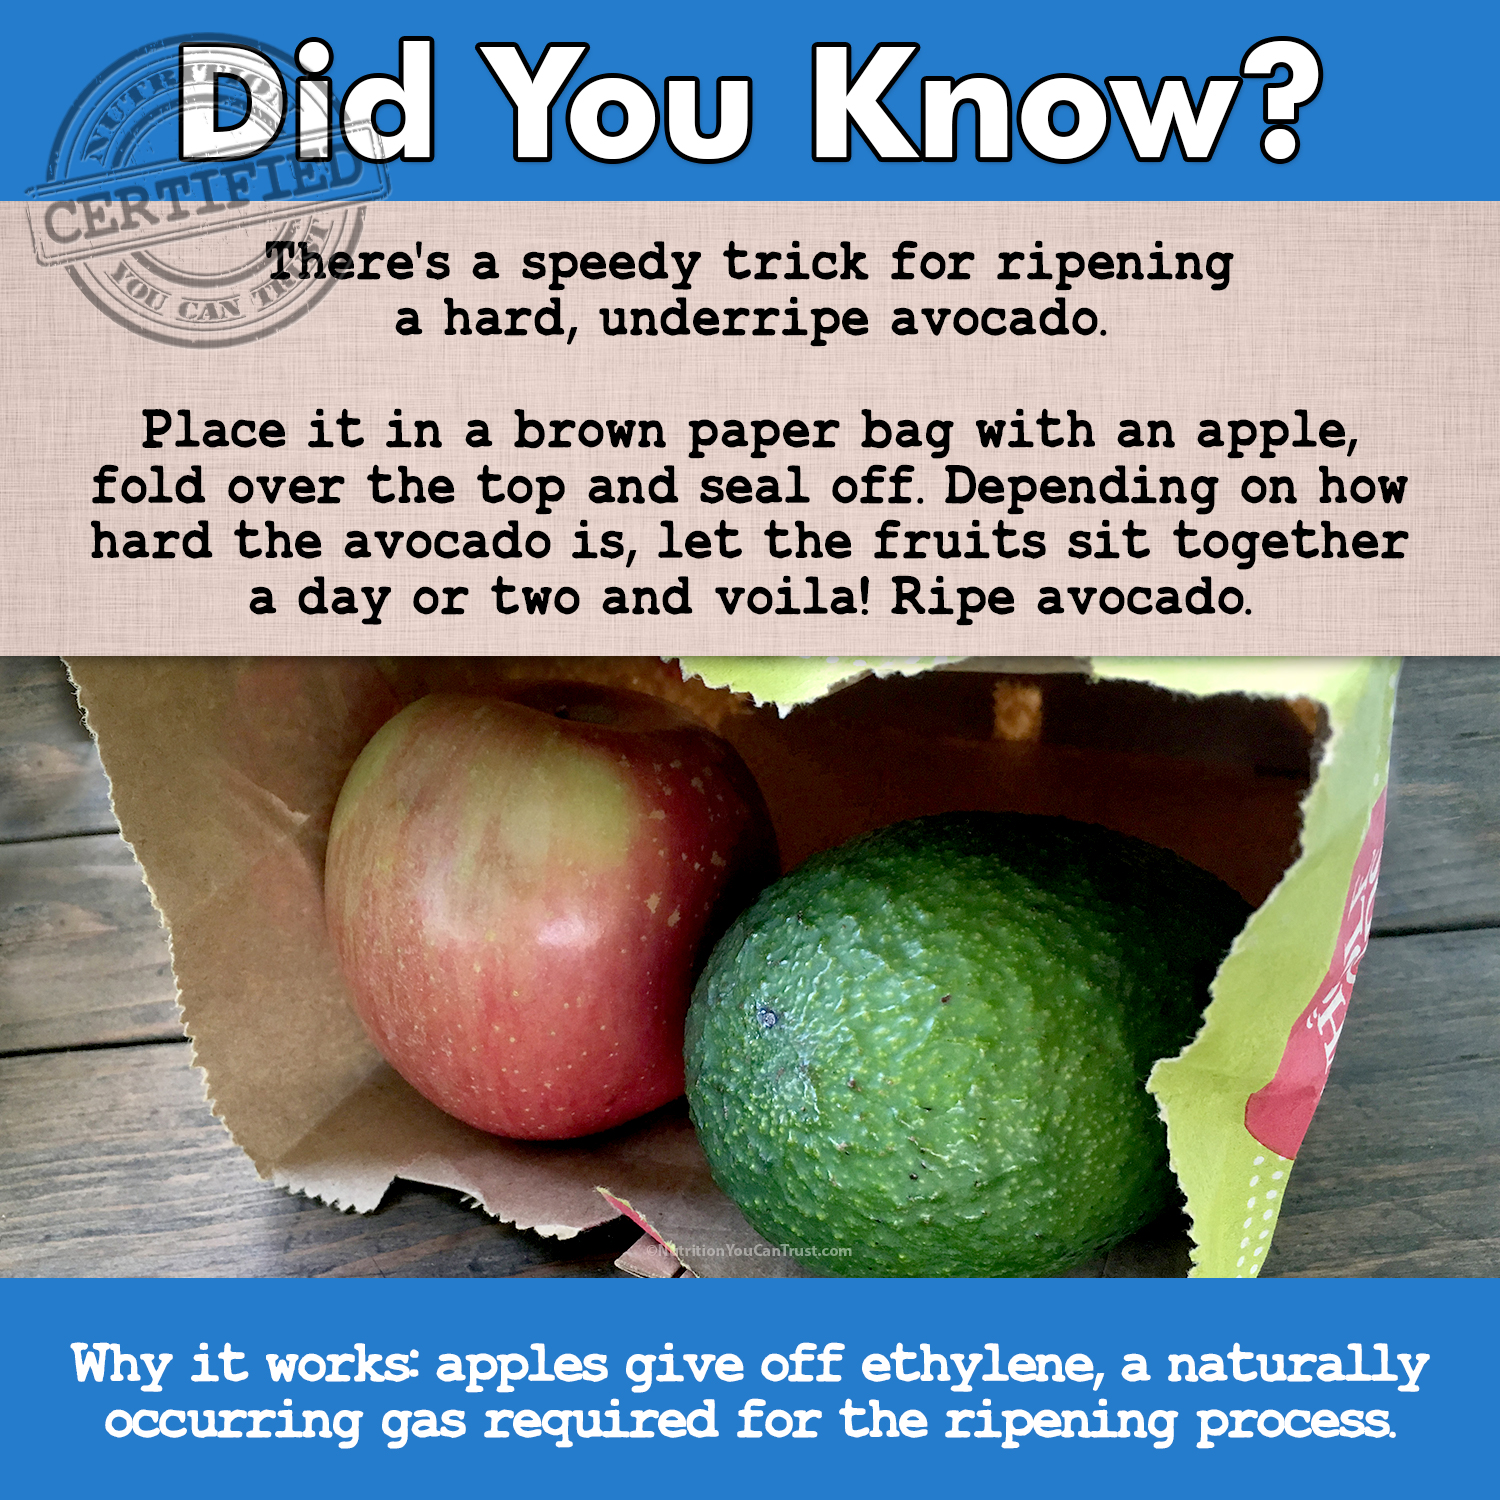 Did You Know Avocado Apple Ethylene Ripening Food Waste